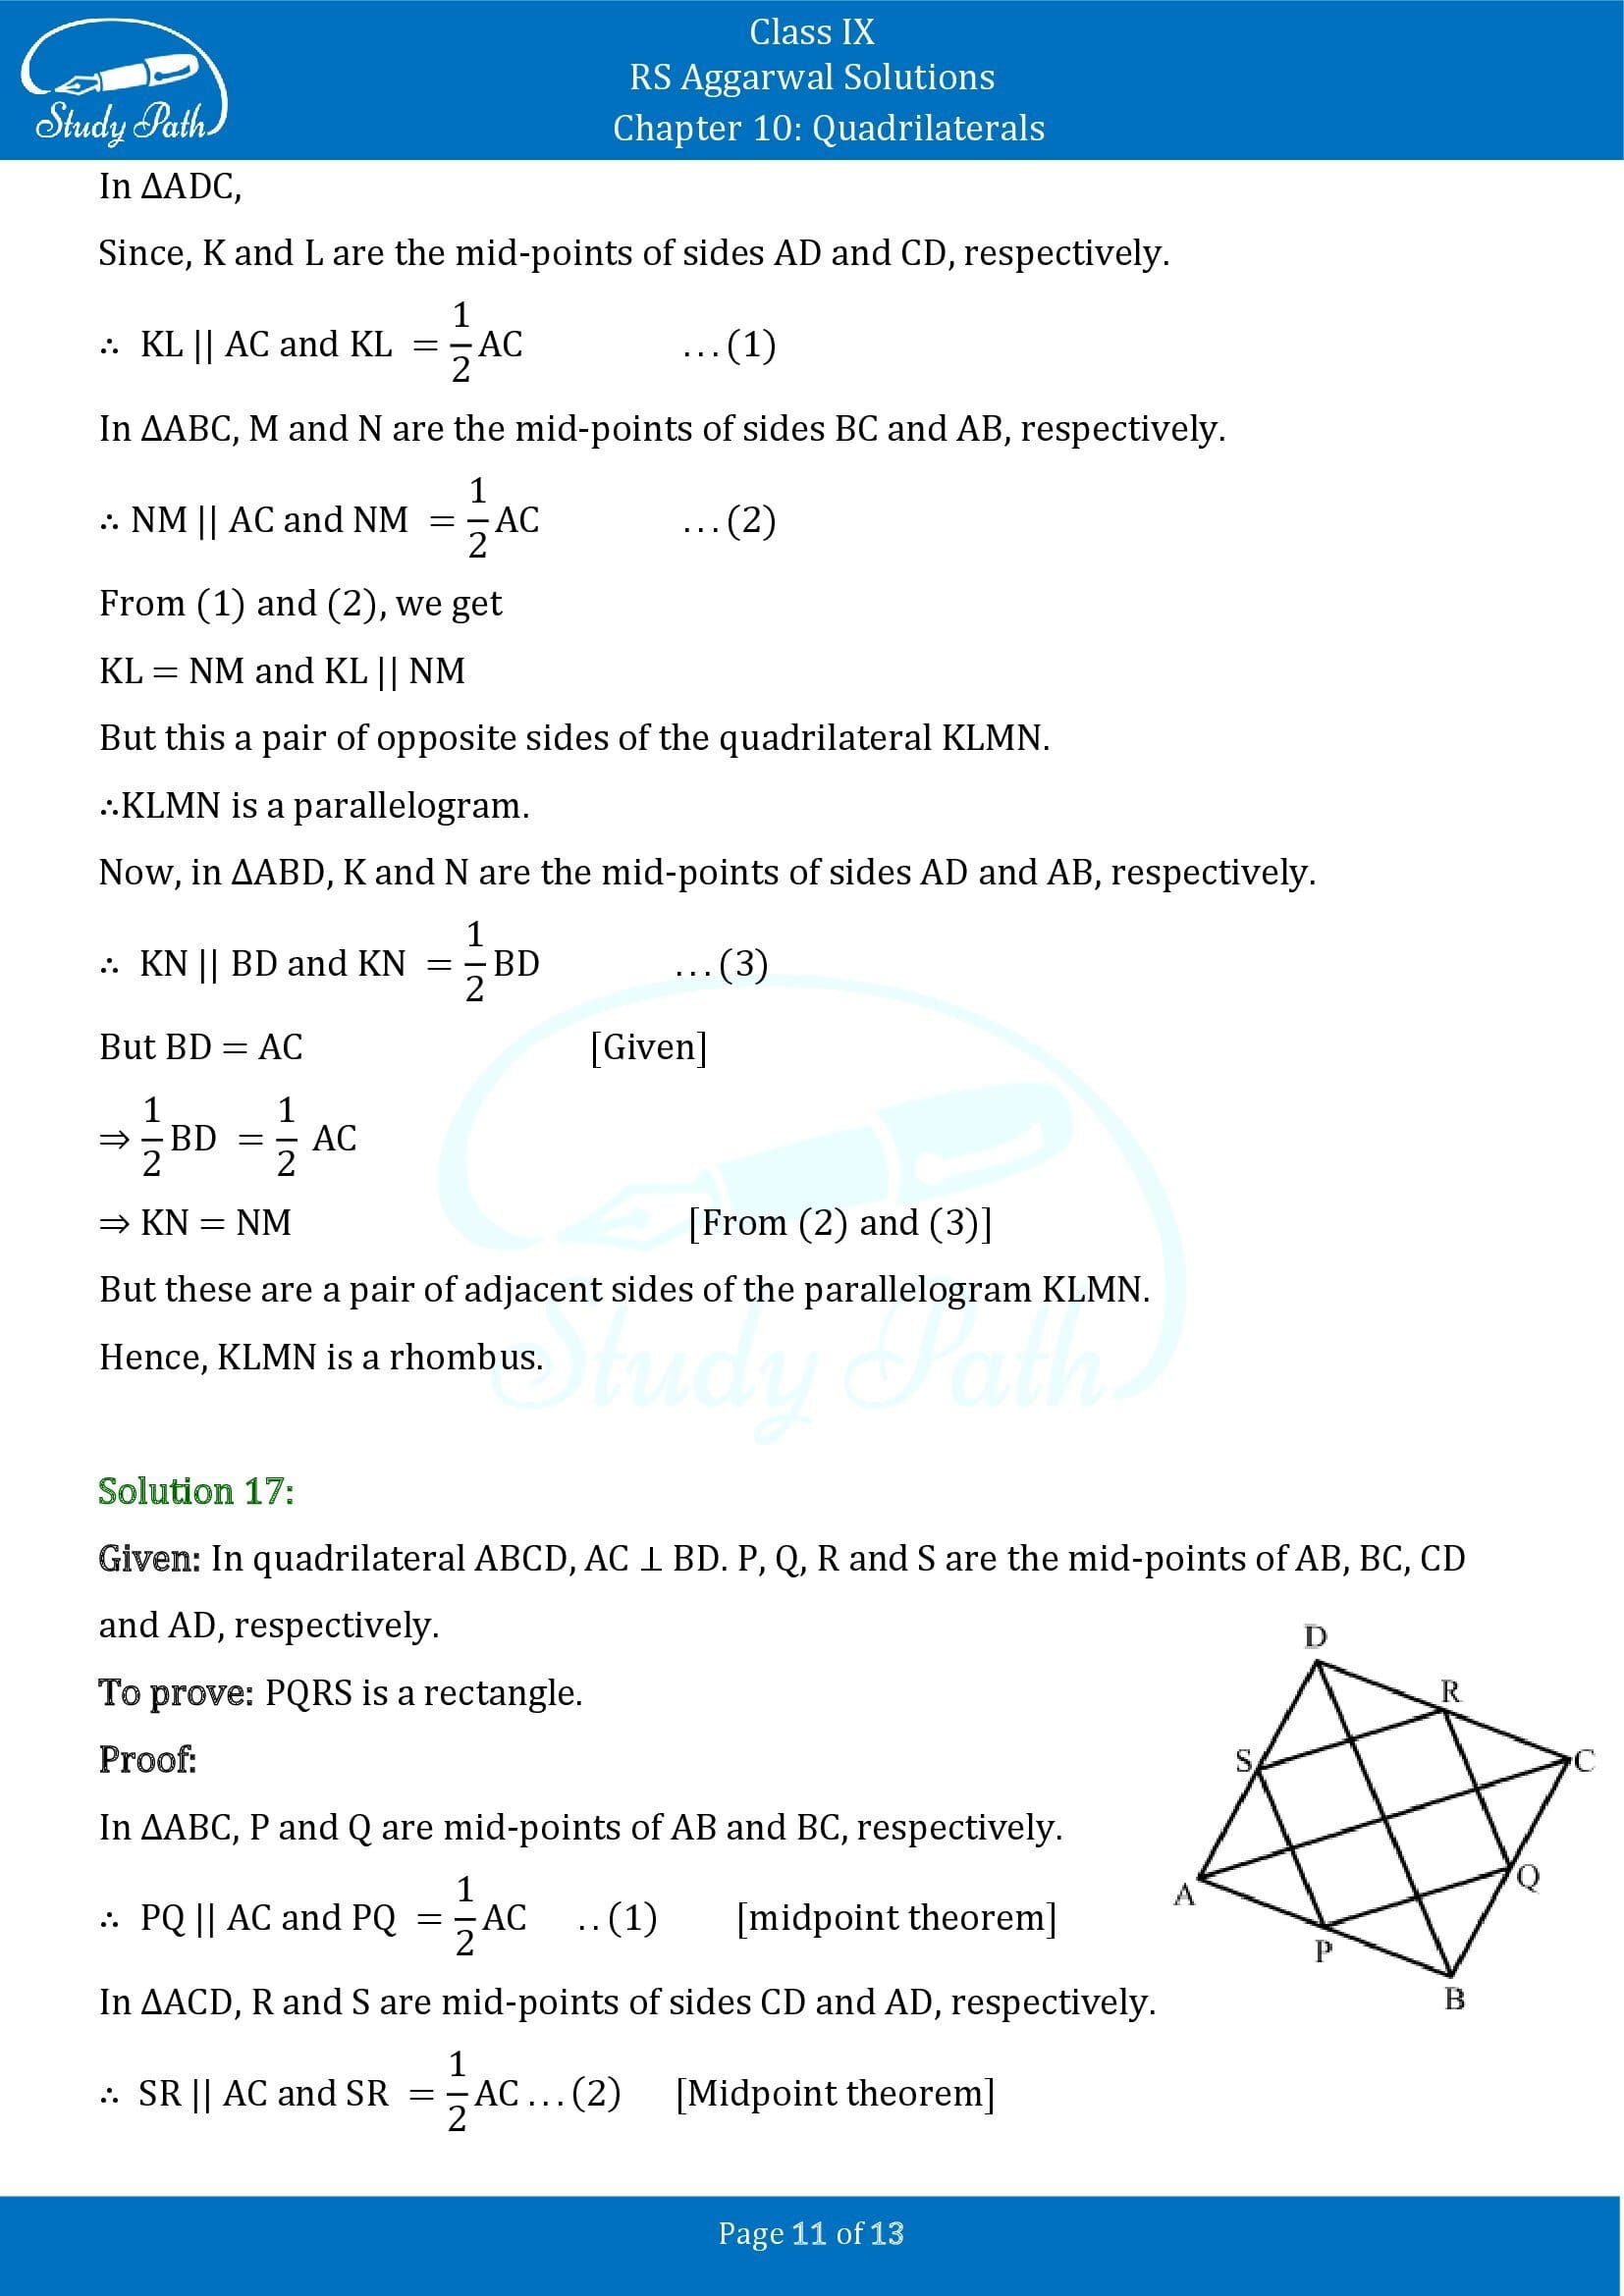 RS Aggarwal Solutions Class 9 Chapter 10 Quadrilaterals Exercise 10C 00011